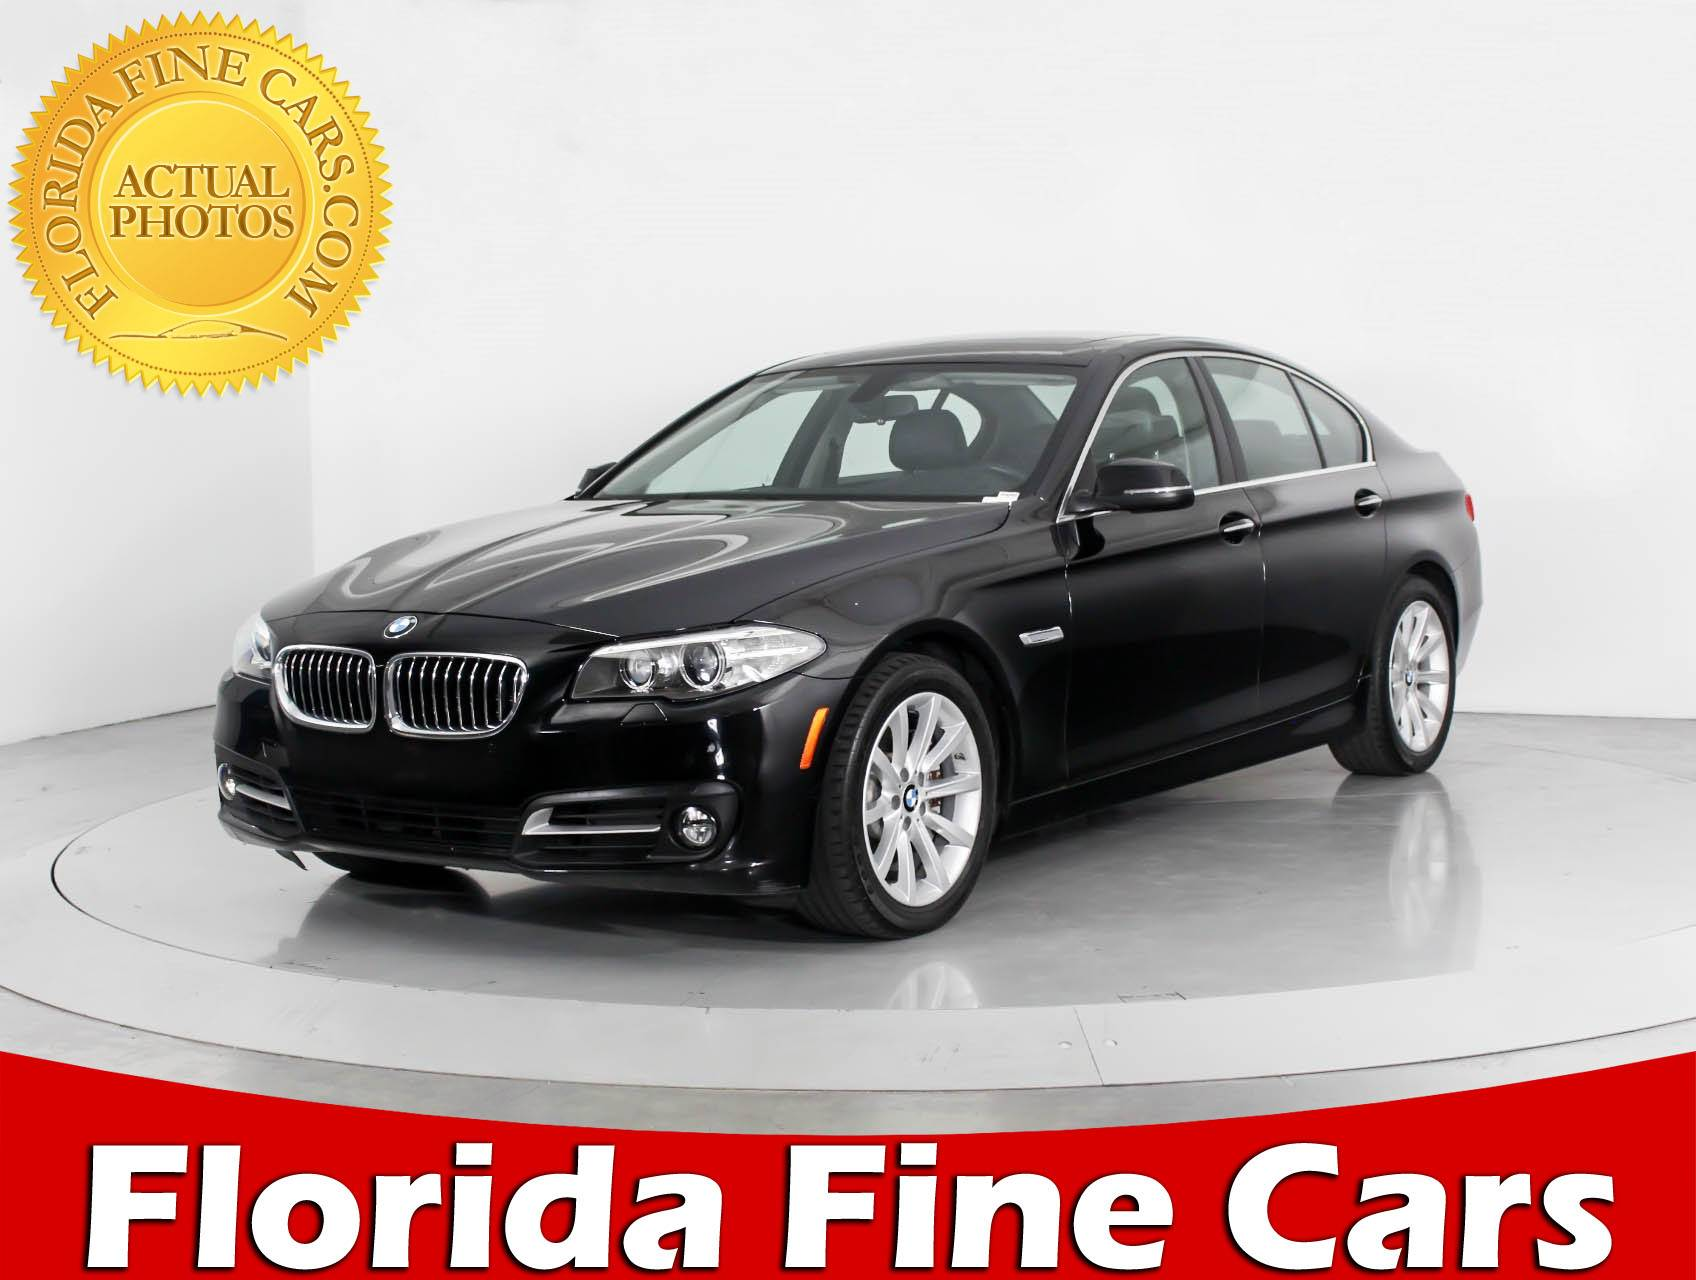 Used 2015 BMW 5 SERIES 535D XDRIVE Sedan for sale in WEST PALM FL